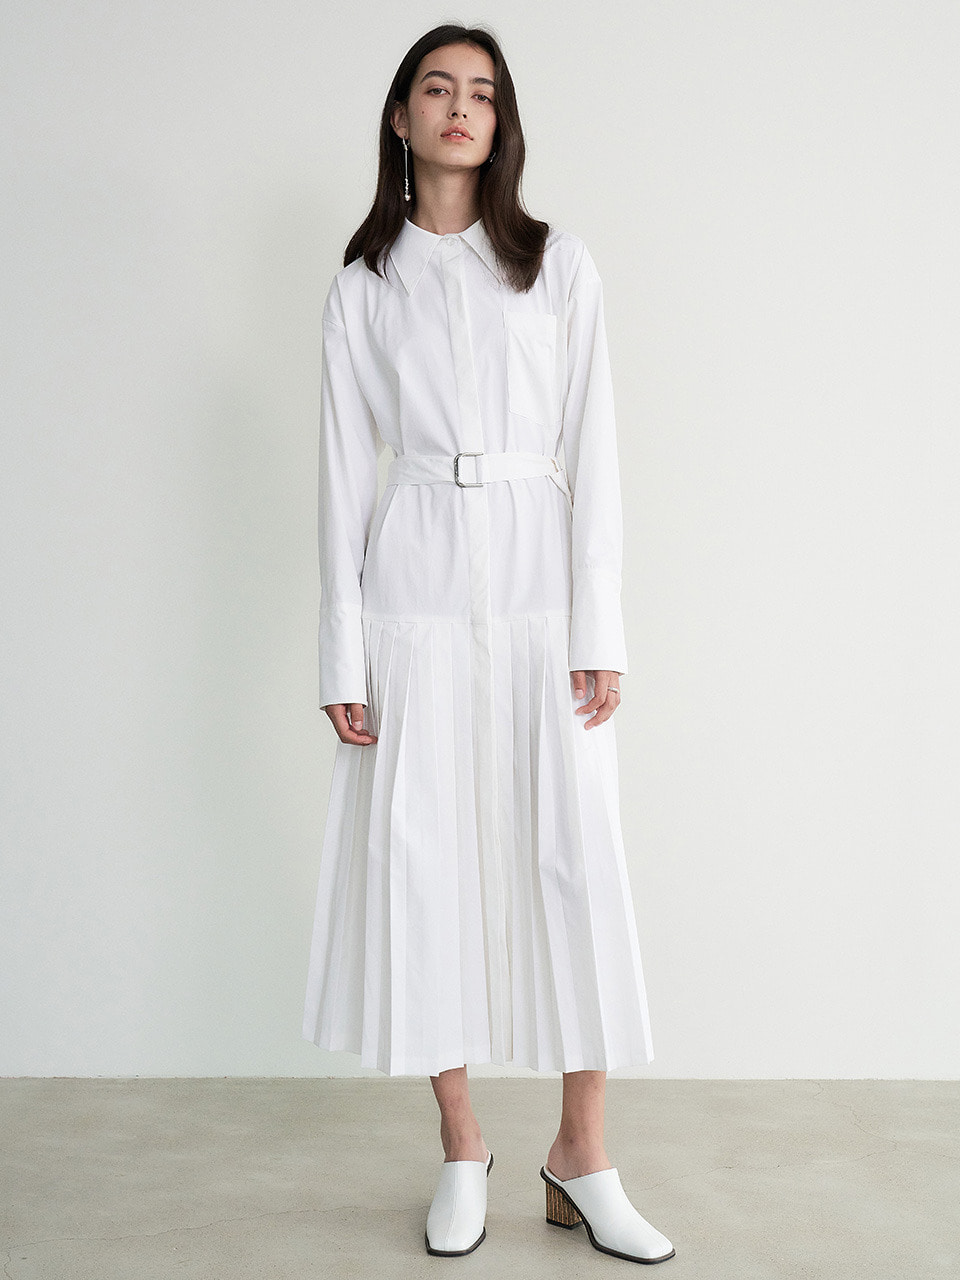 [9/23 예약배송] 004 Pleated Cotton White Shirt Dress